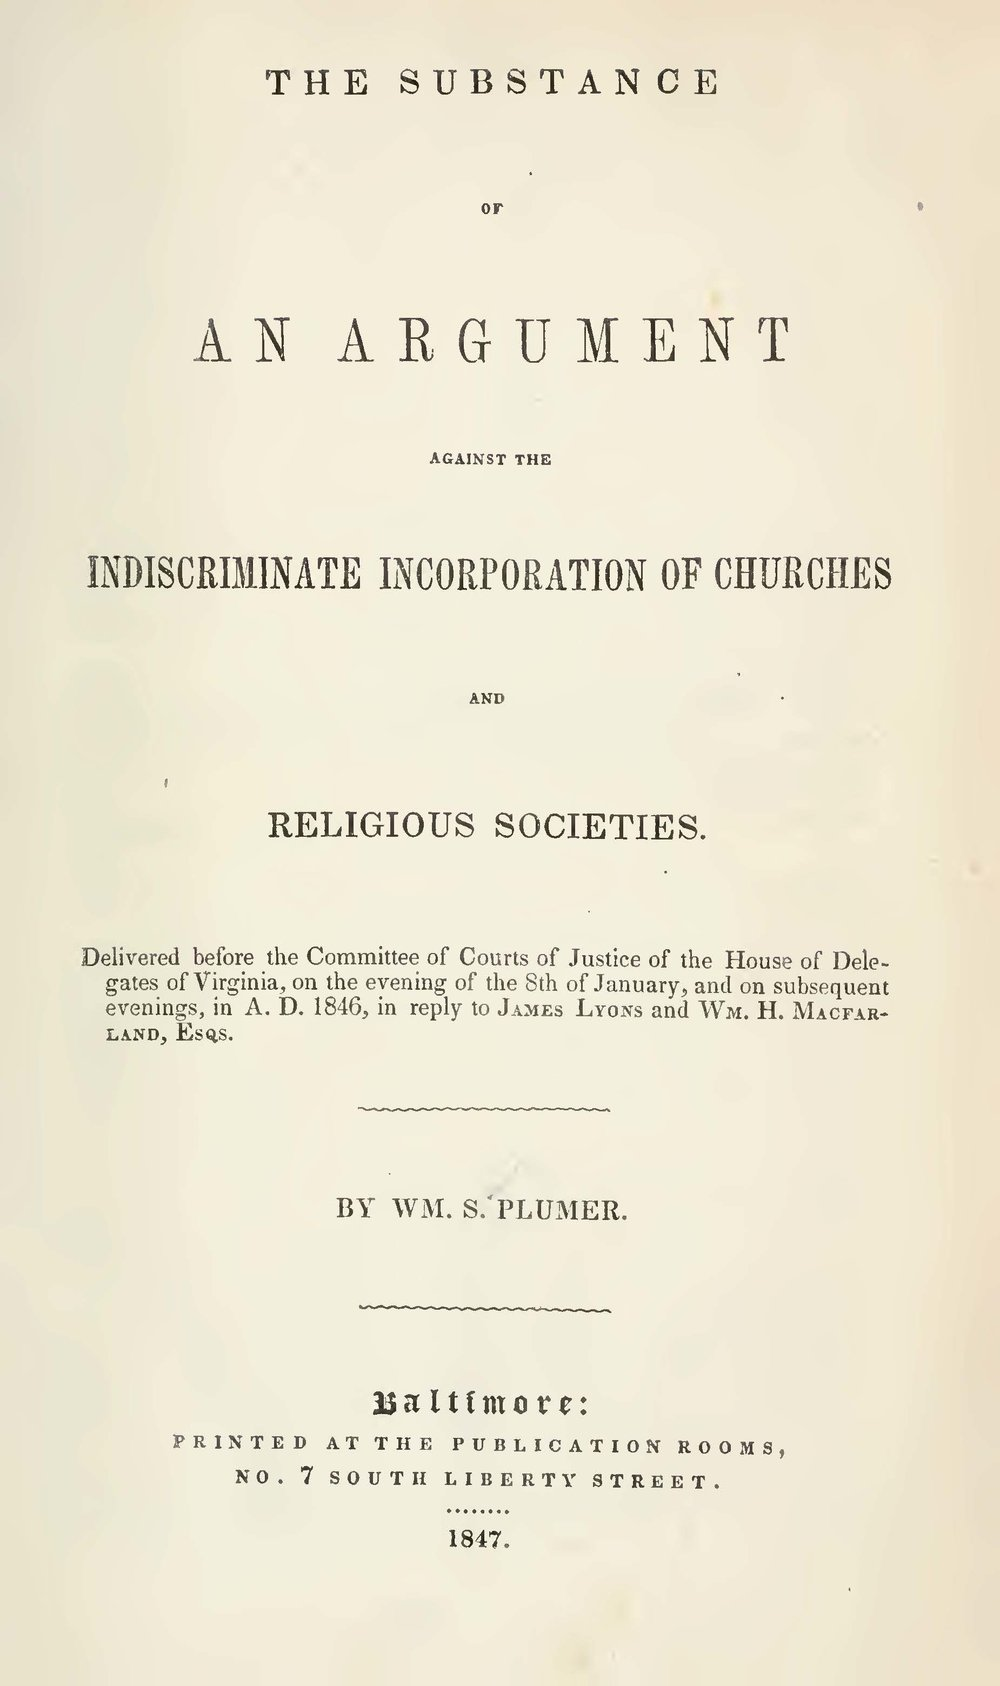 Plumer, William Swan, The Substance of an Arugument Against the Indiscriminate Incorporation of Churches and Religious Societies Title Page.jpg